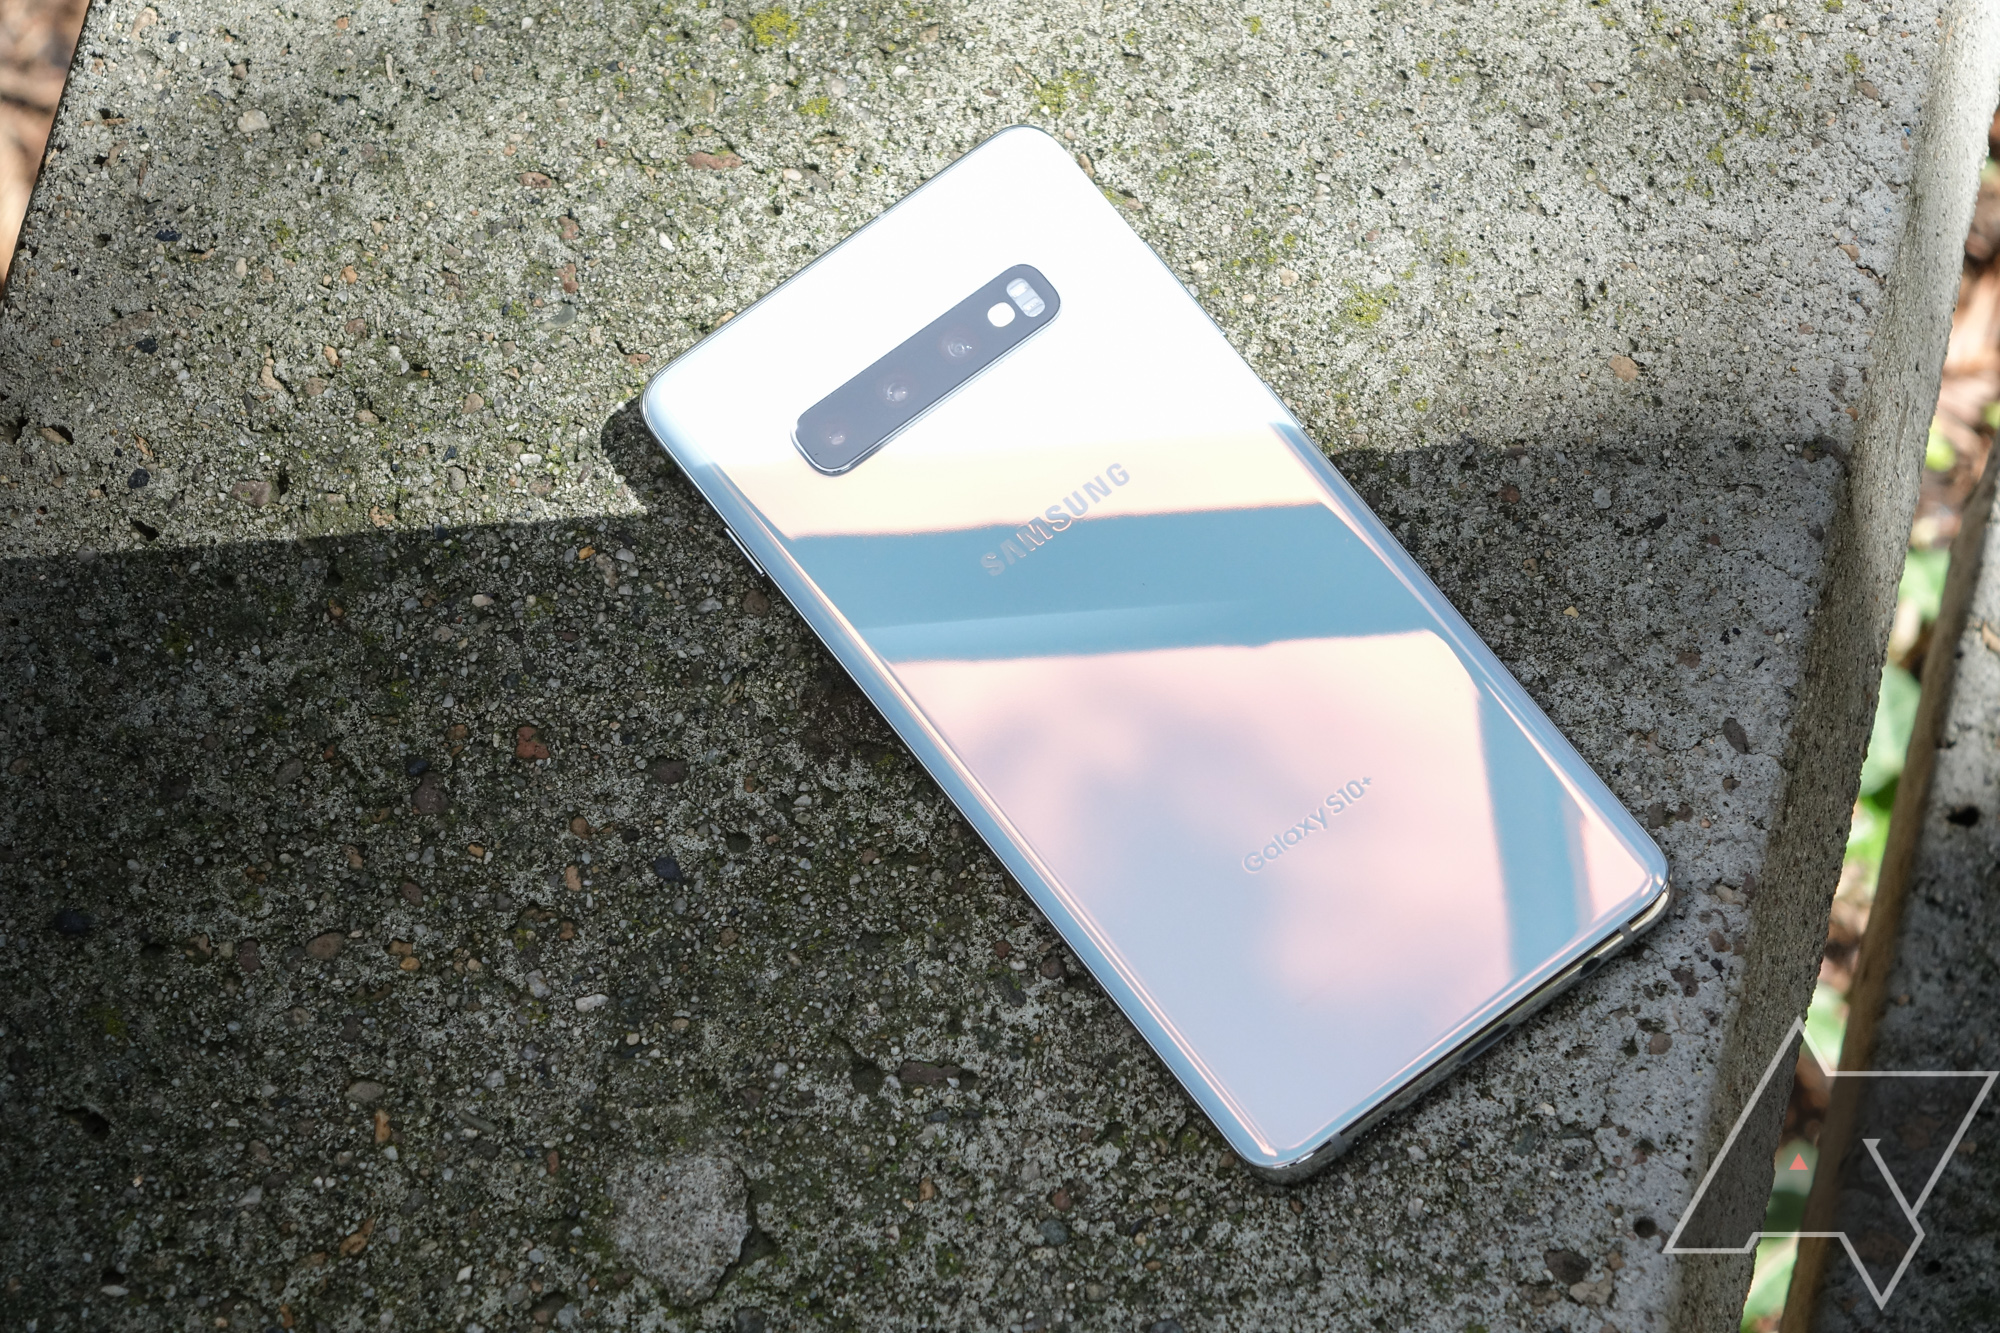 Samsung Galaxy Fold review units are already broken